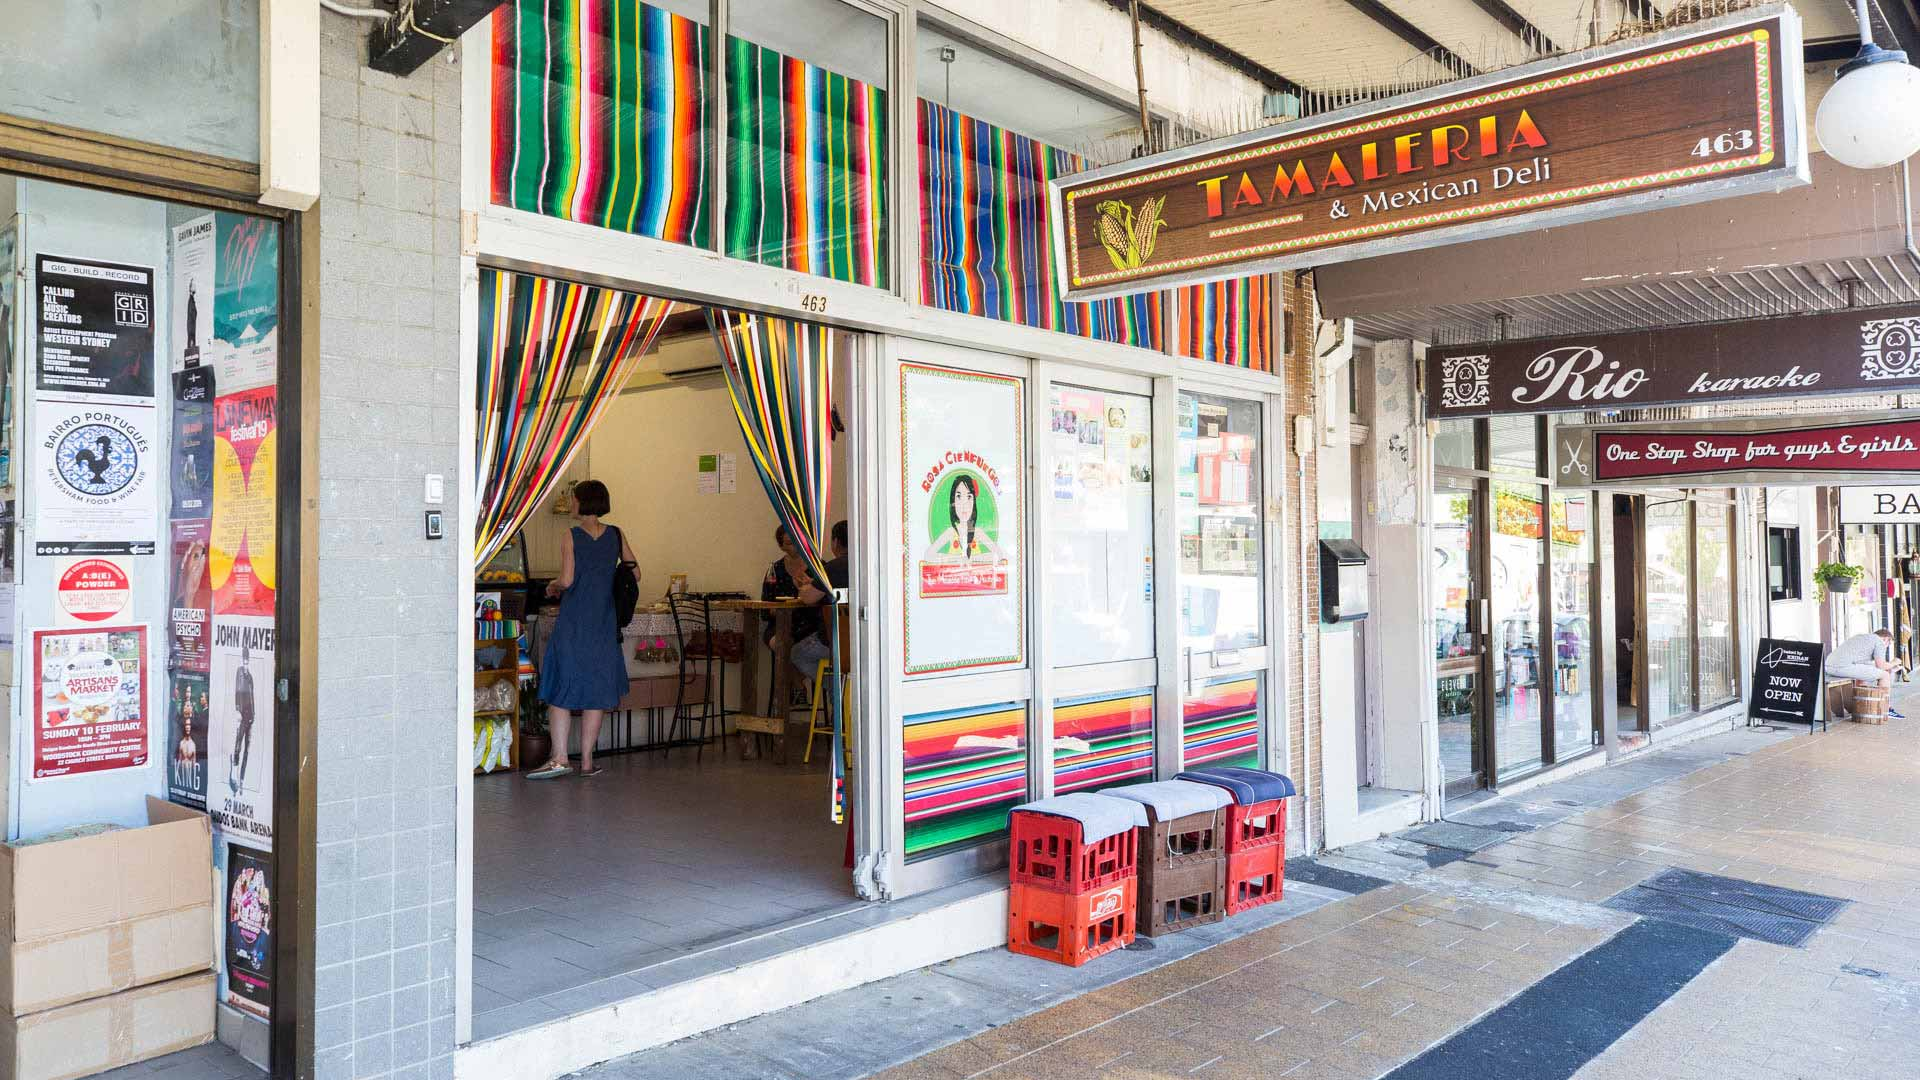 Rosa Cienfuegos Tamaleria Mexican Deli Dulwich Hill Review